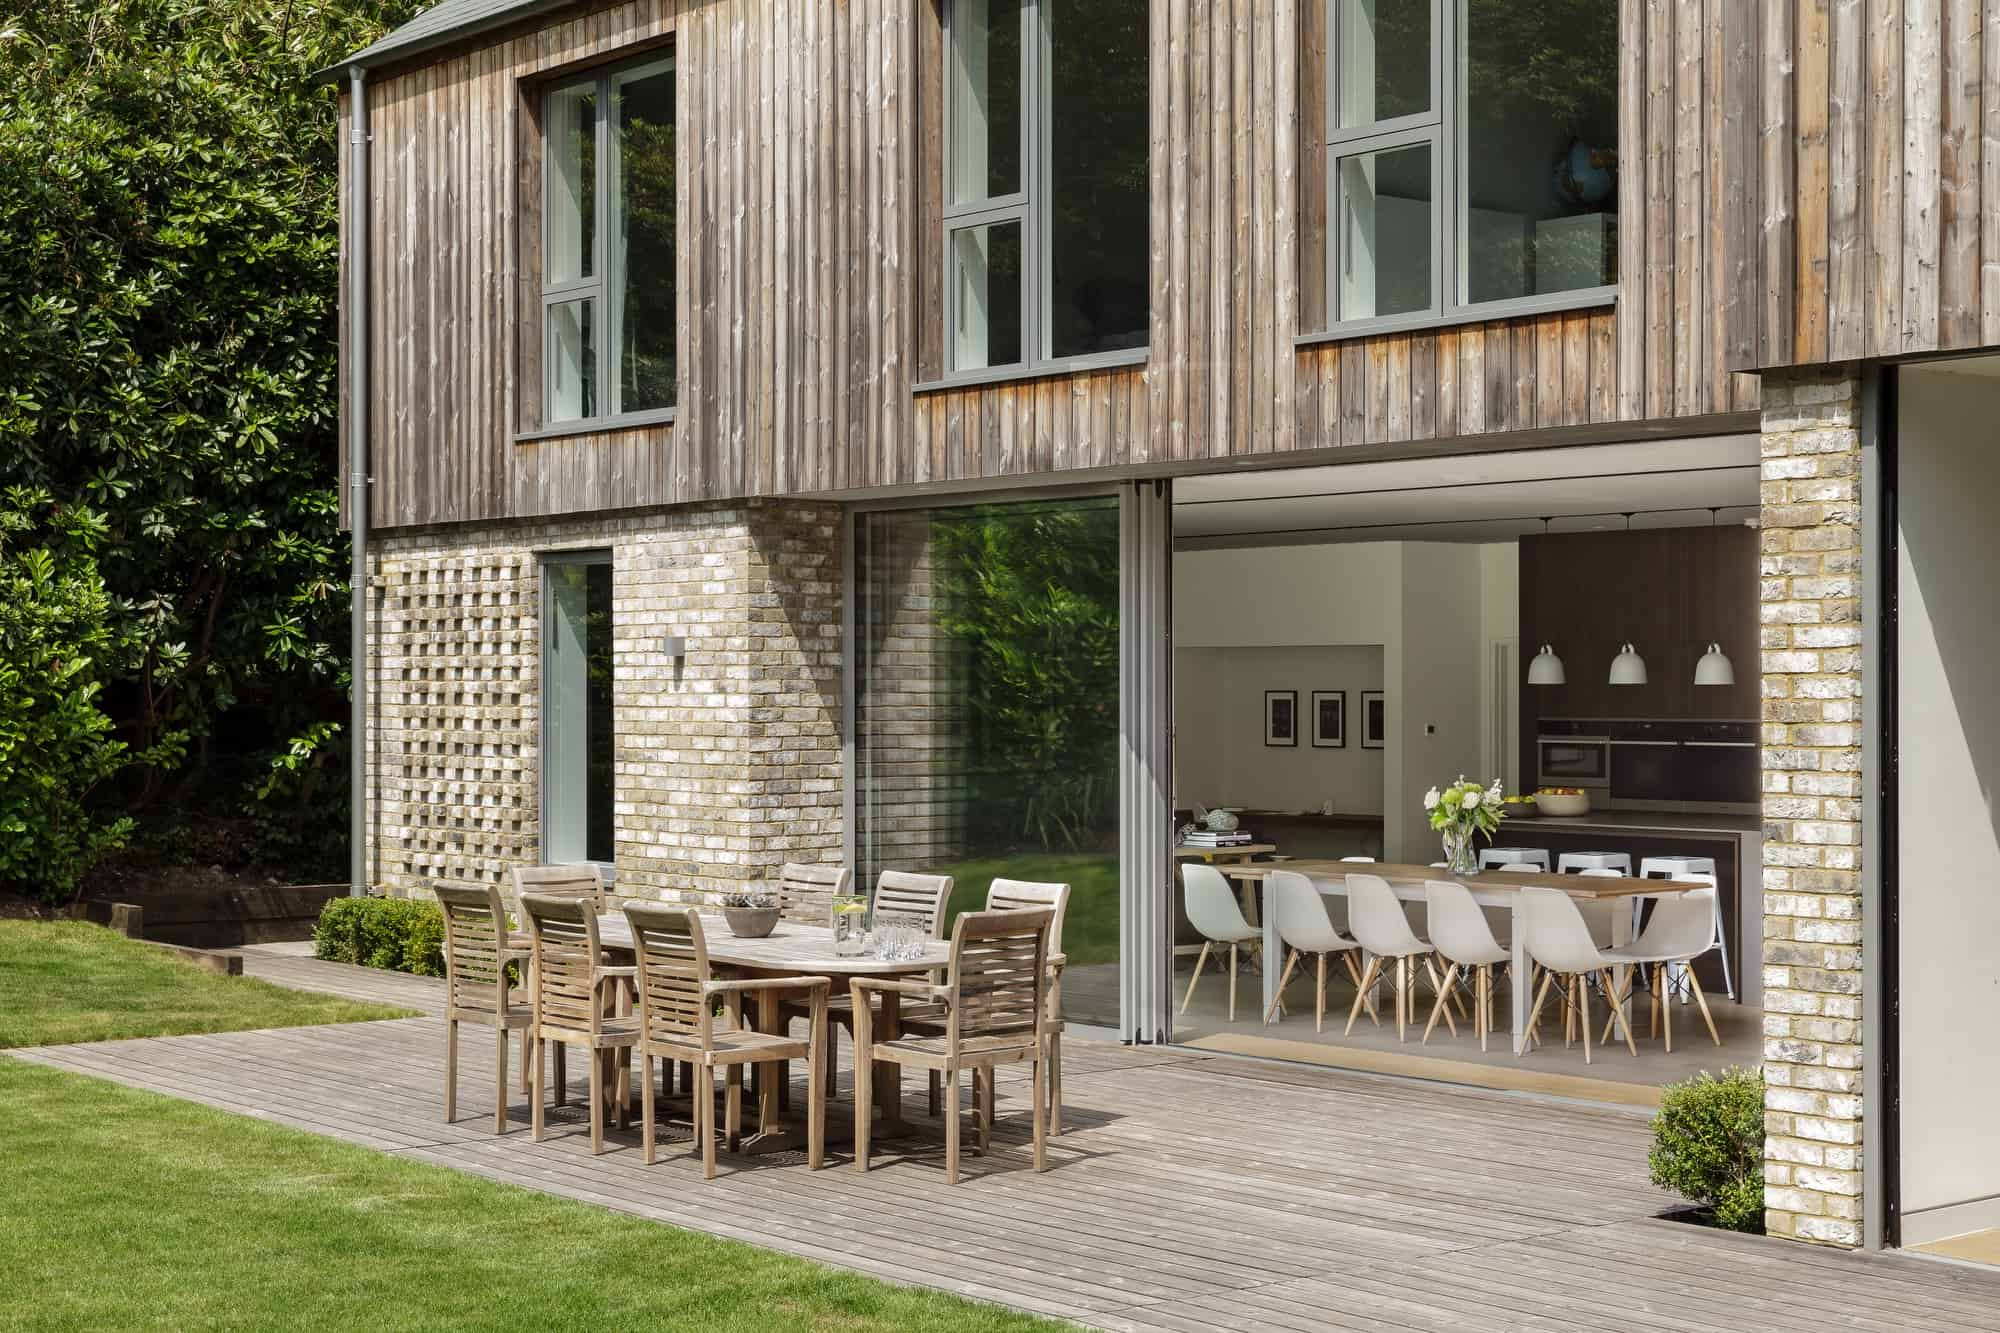 Haslemere GU27 - A stunning contemporary home flooded with natural light - The Location Guys